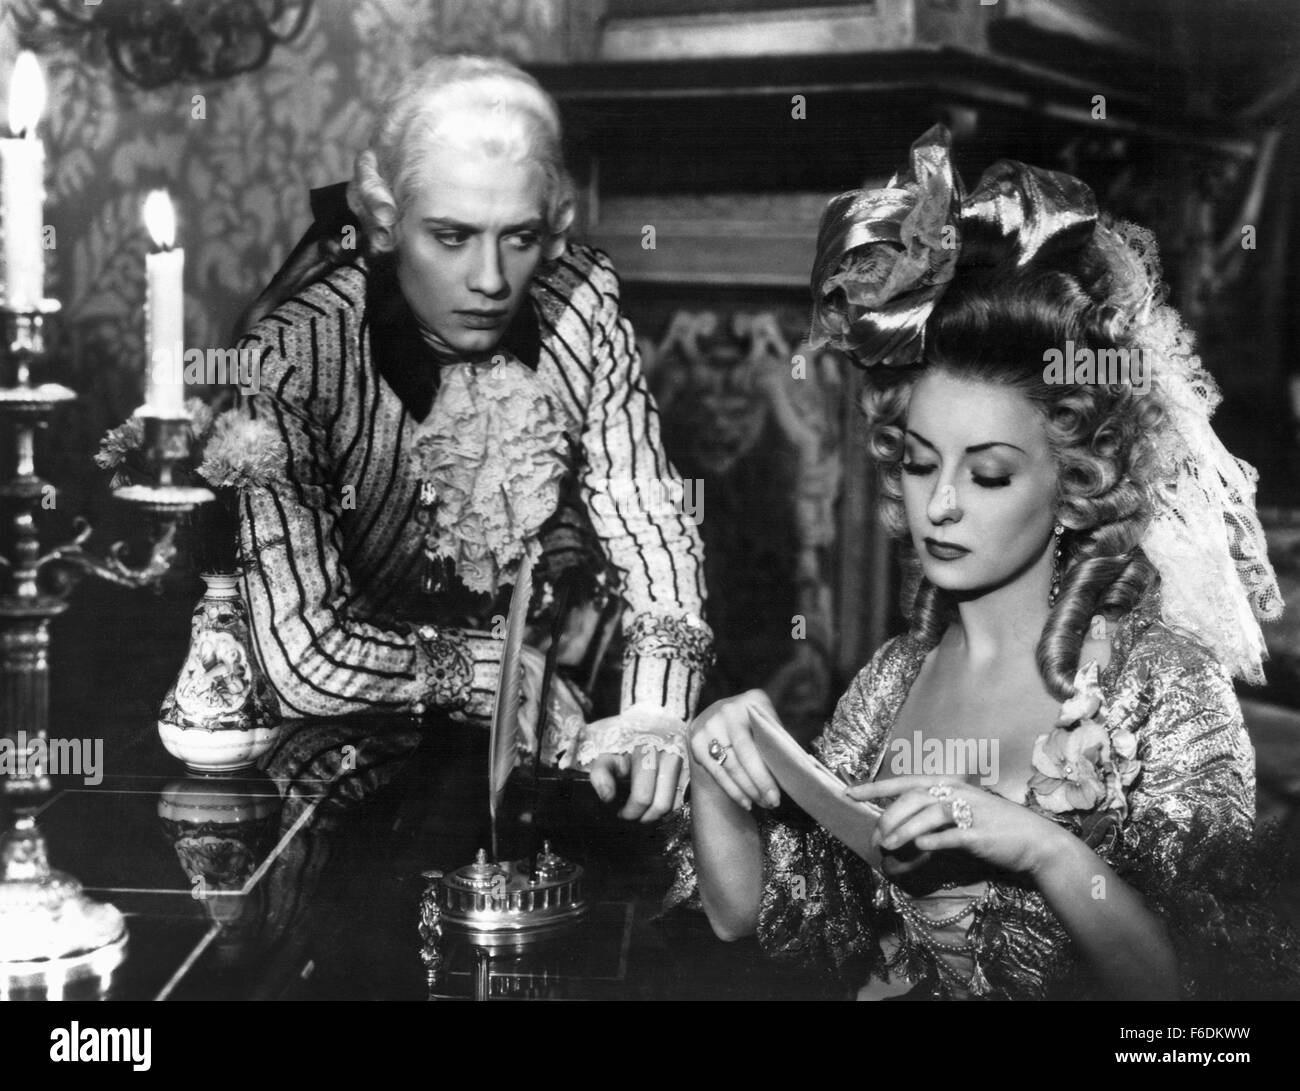 Jan. 1, 1940 - Jacques Dacqmine and Viviane Romance on-set of the Film, The Queen's Necklace, (aka L'Affaire - Stock Image